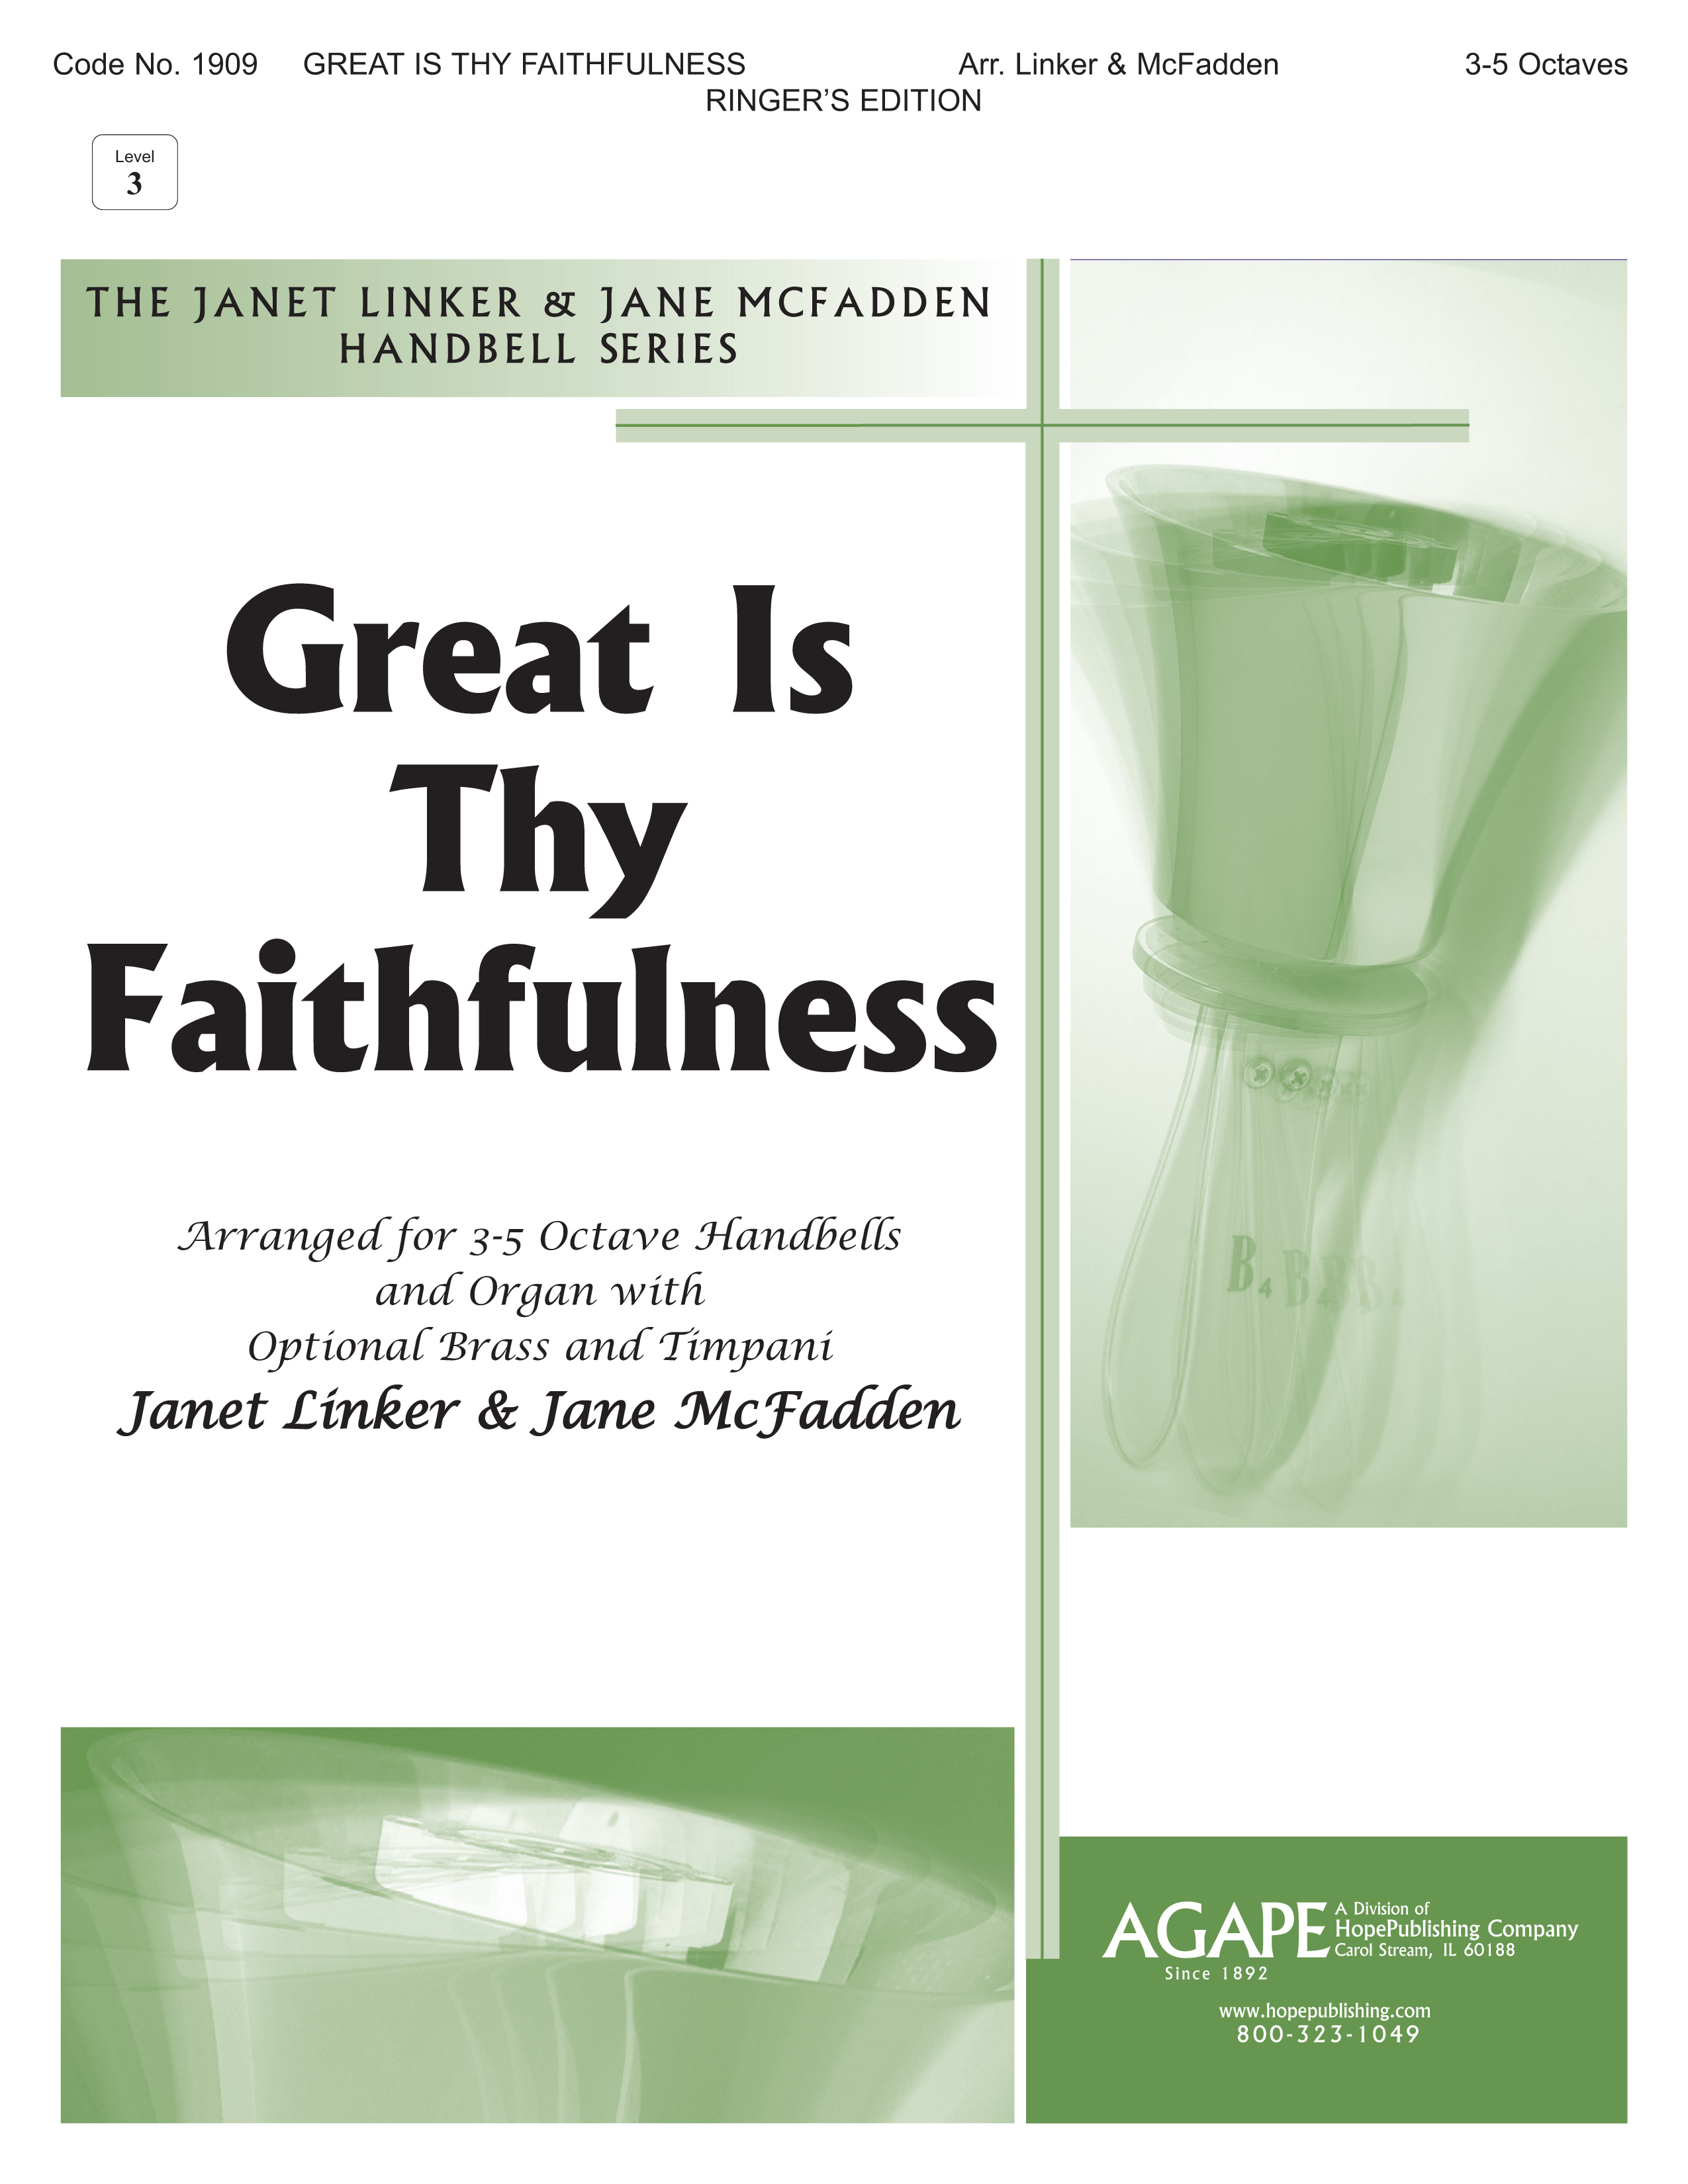 Great Is Thy Faithfulness - 3-5 Octave Cover Image